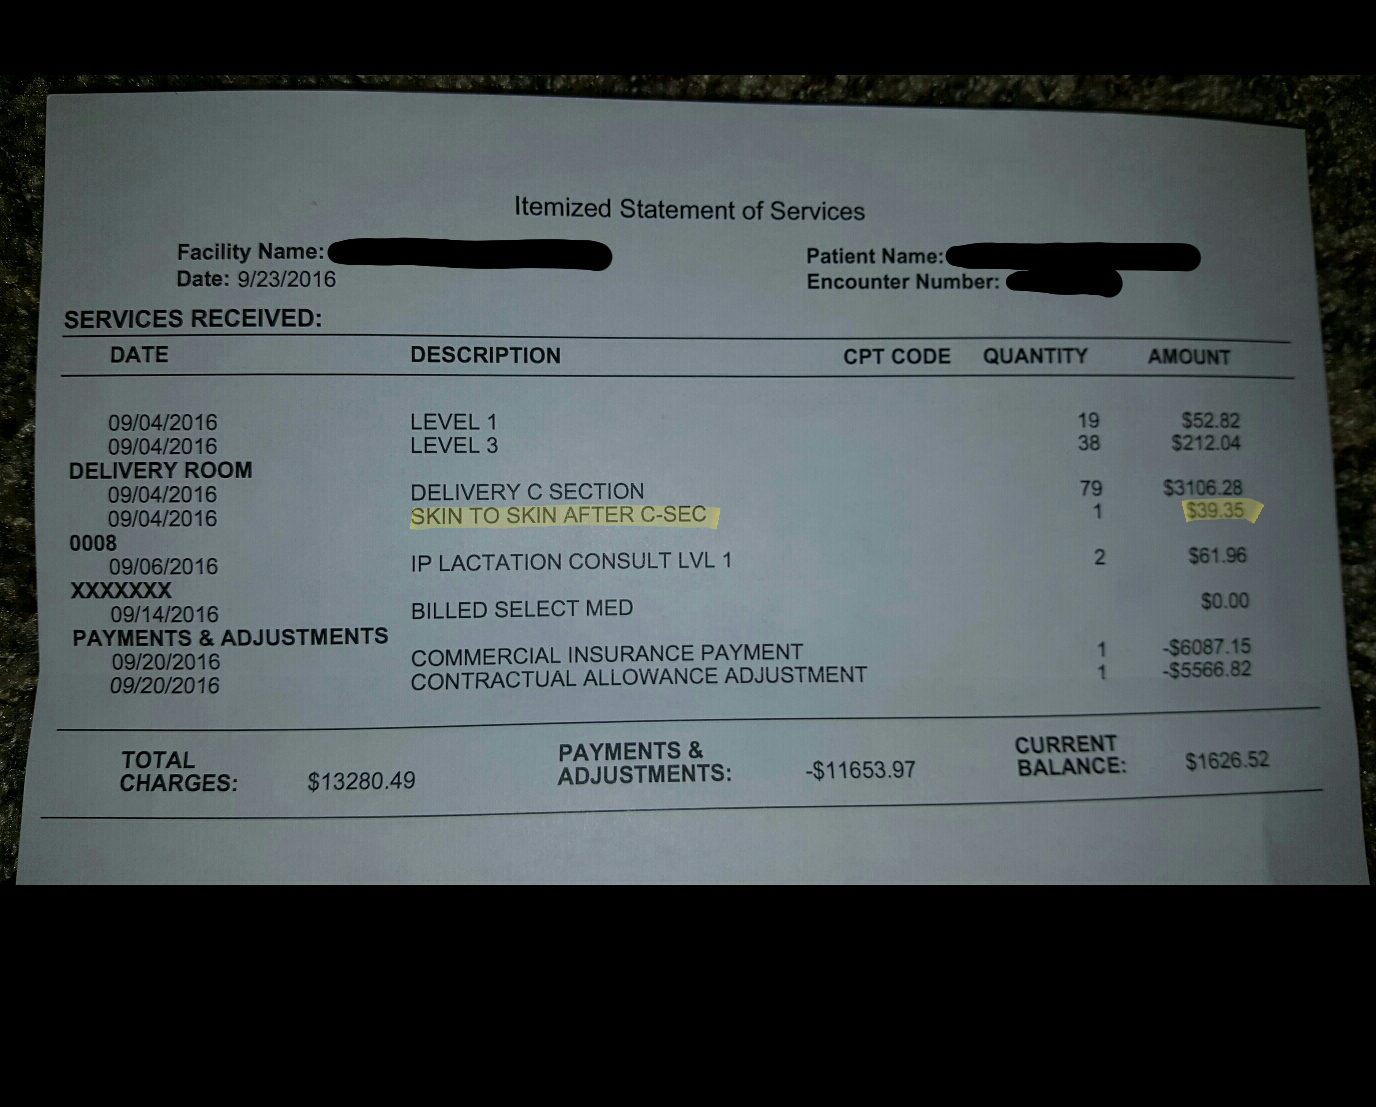 Arbitrary hospital fees exposed: $40 to hold a newborn and